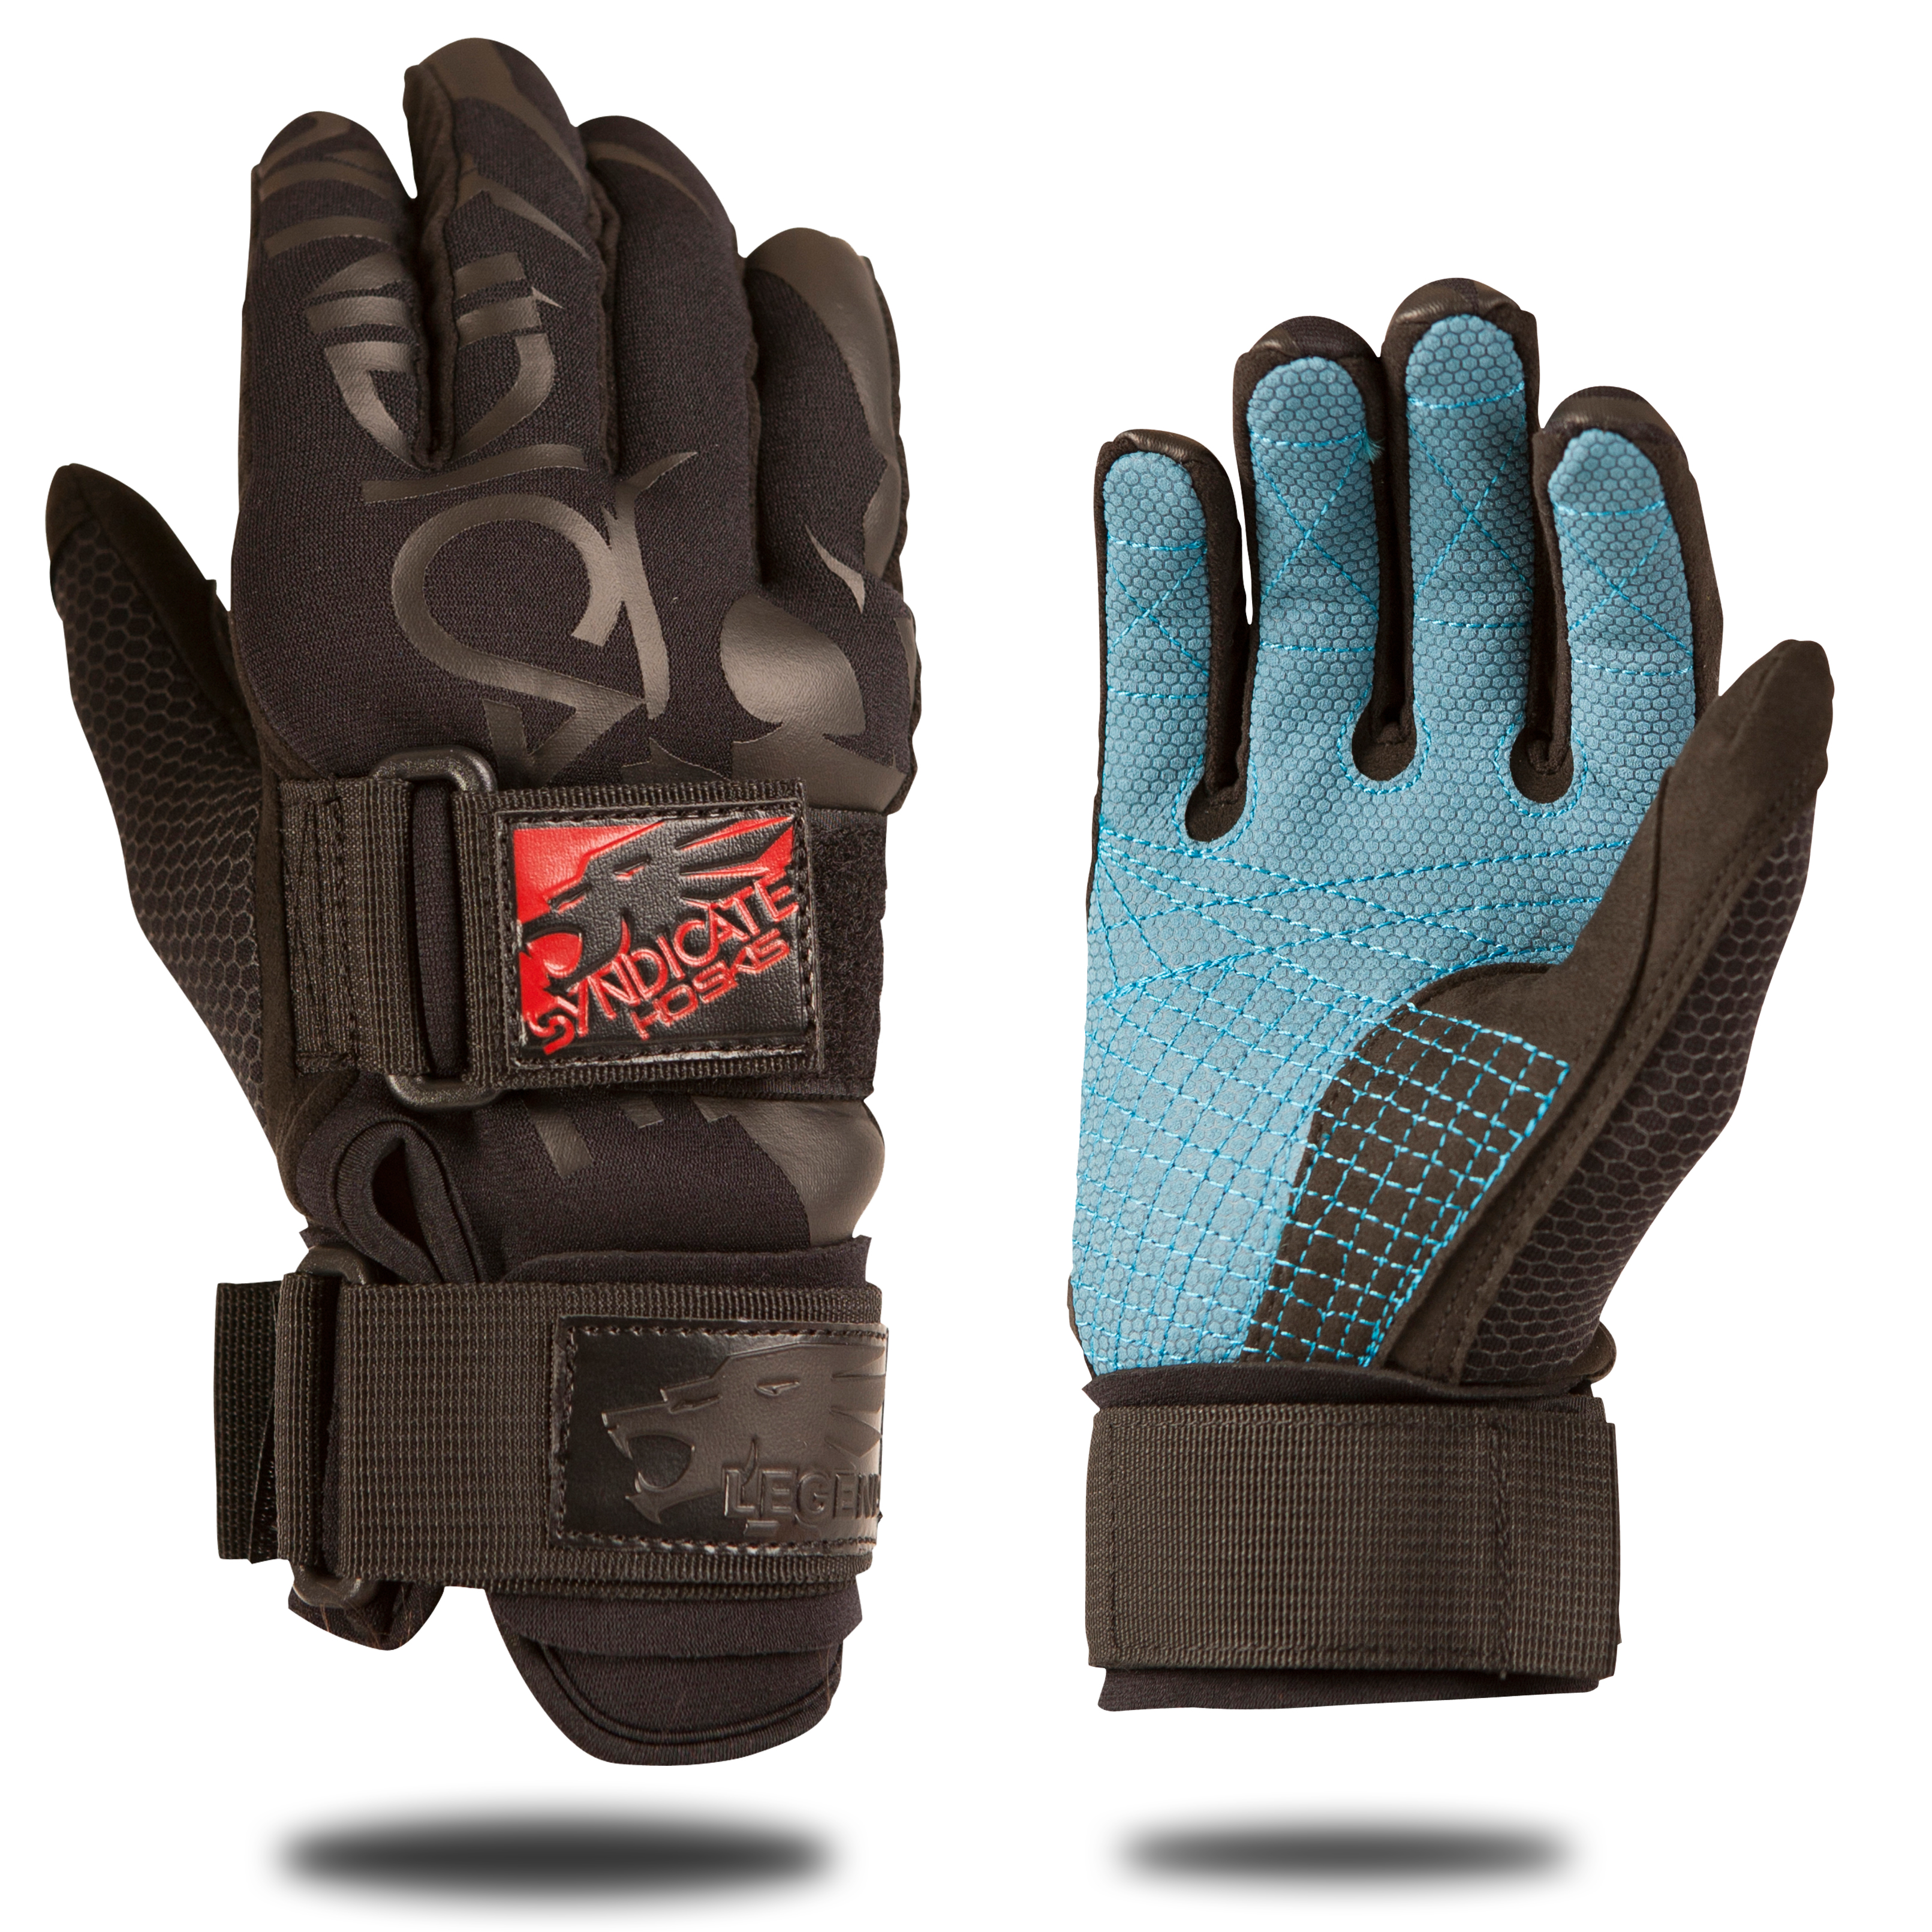 SYNDICATE LEGEND GLOVE HO SPORTS 2018